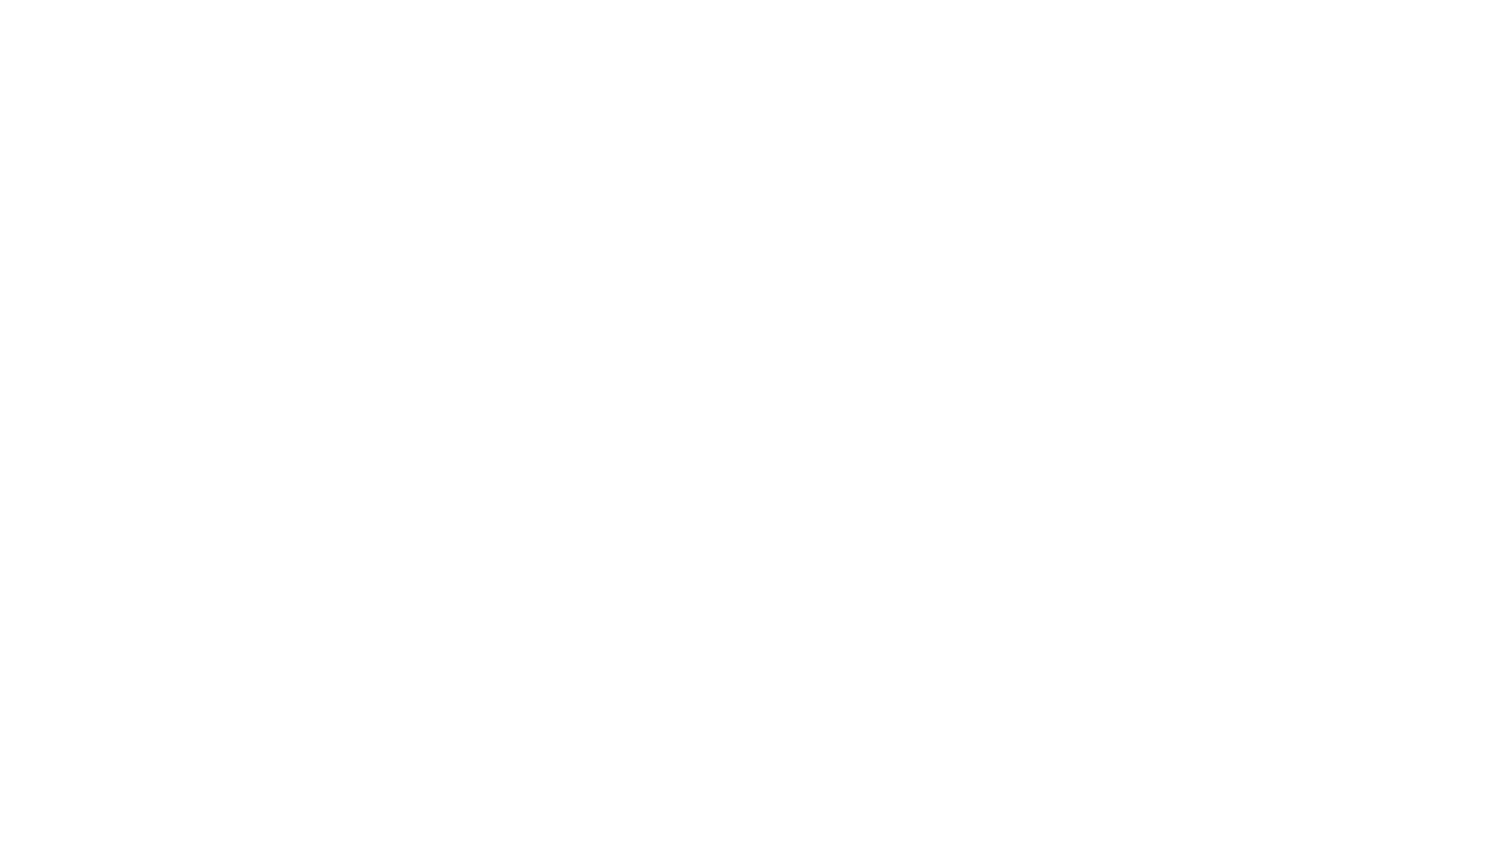 Clip Culture Barbershop | Barbershop in the Atlanta & Sandy Springs GA Area